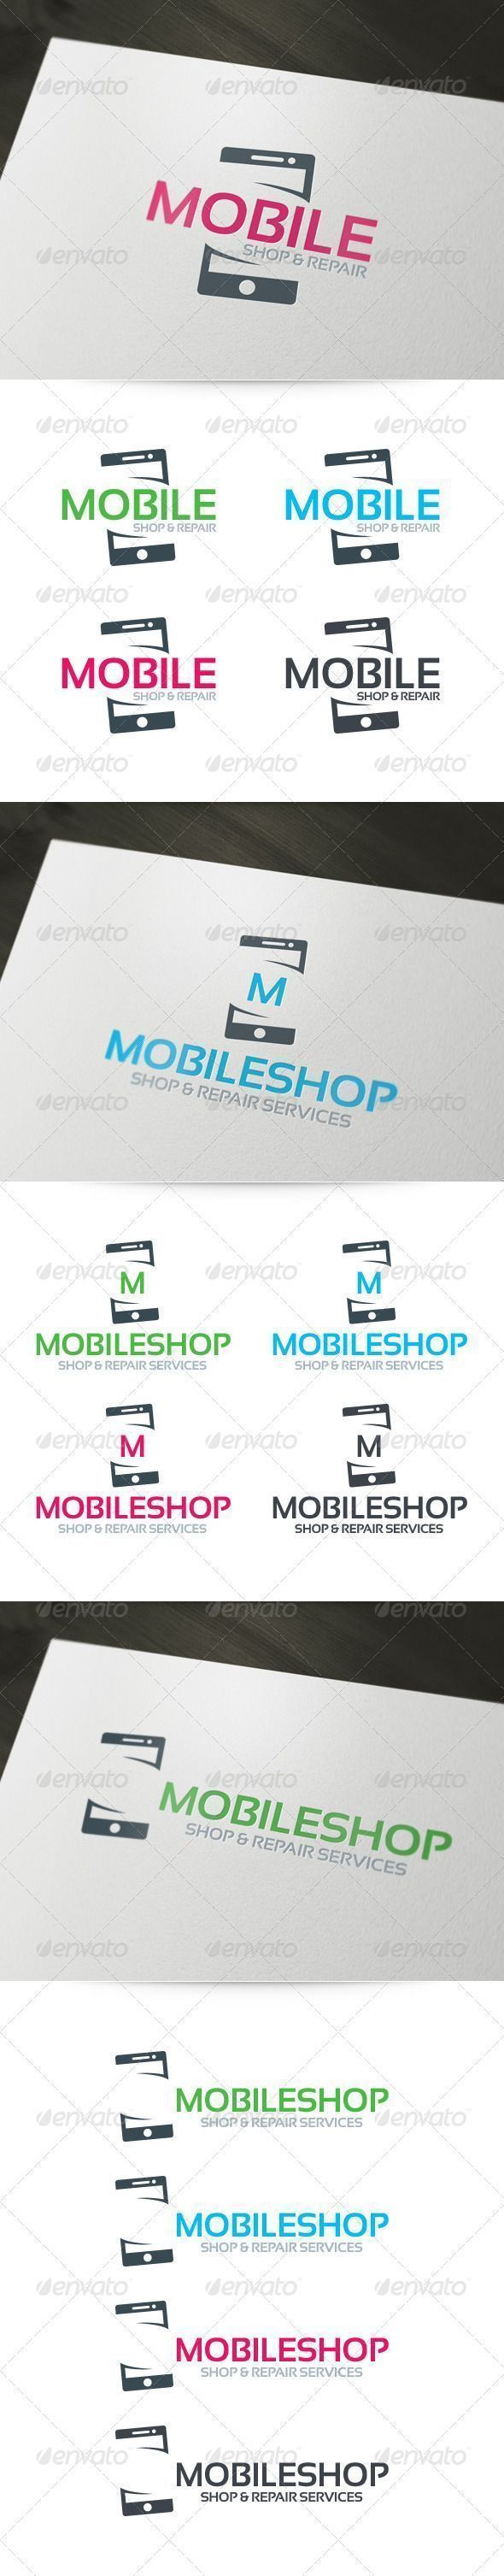 Mobile Shop & Repair  - Logo Design Template Vector #logotype Download it here: http://graphicriver.net/item/mobile-shop-repair-logo/6156880?s_rank=1011?ref=nexion #mobilemarketinglogo